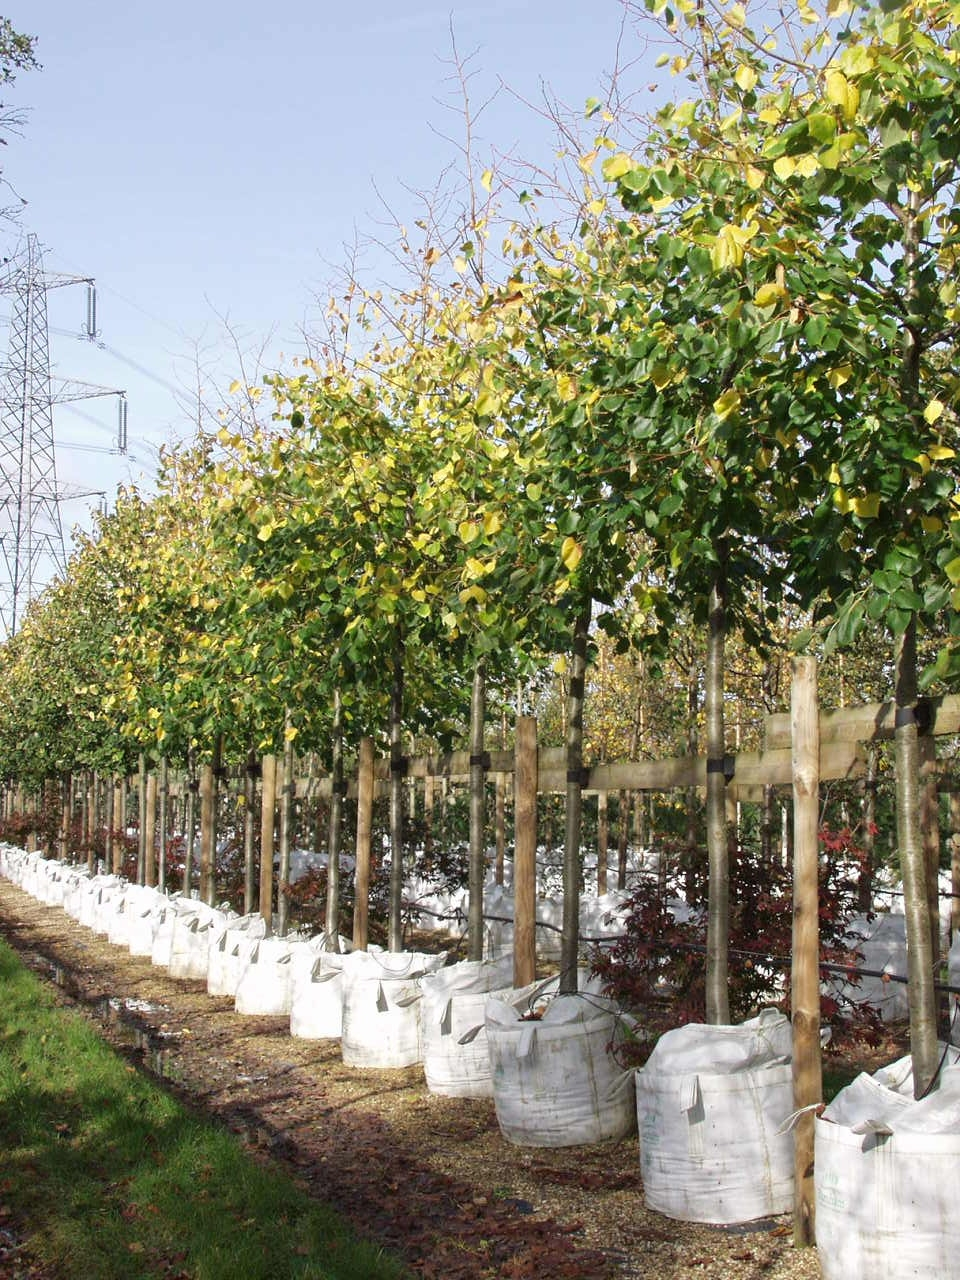 Tilia x euchlora in early autumn on the nursery Seed pods and foliage of Tilia x euchlora